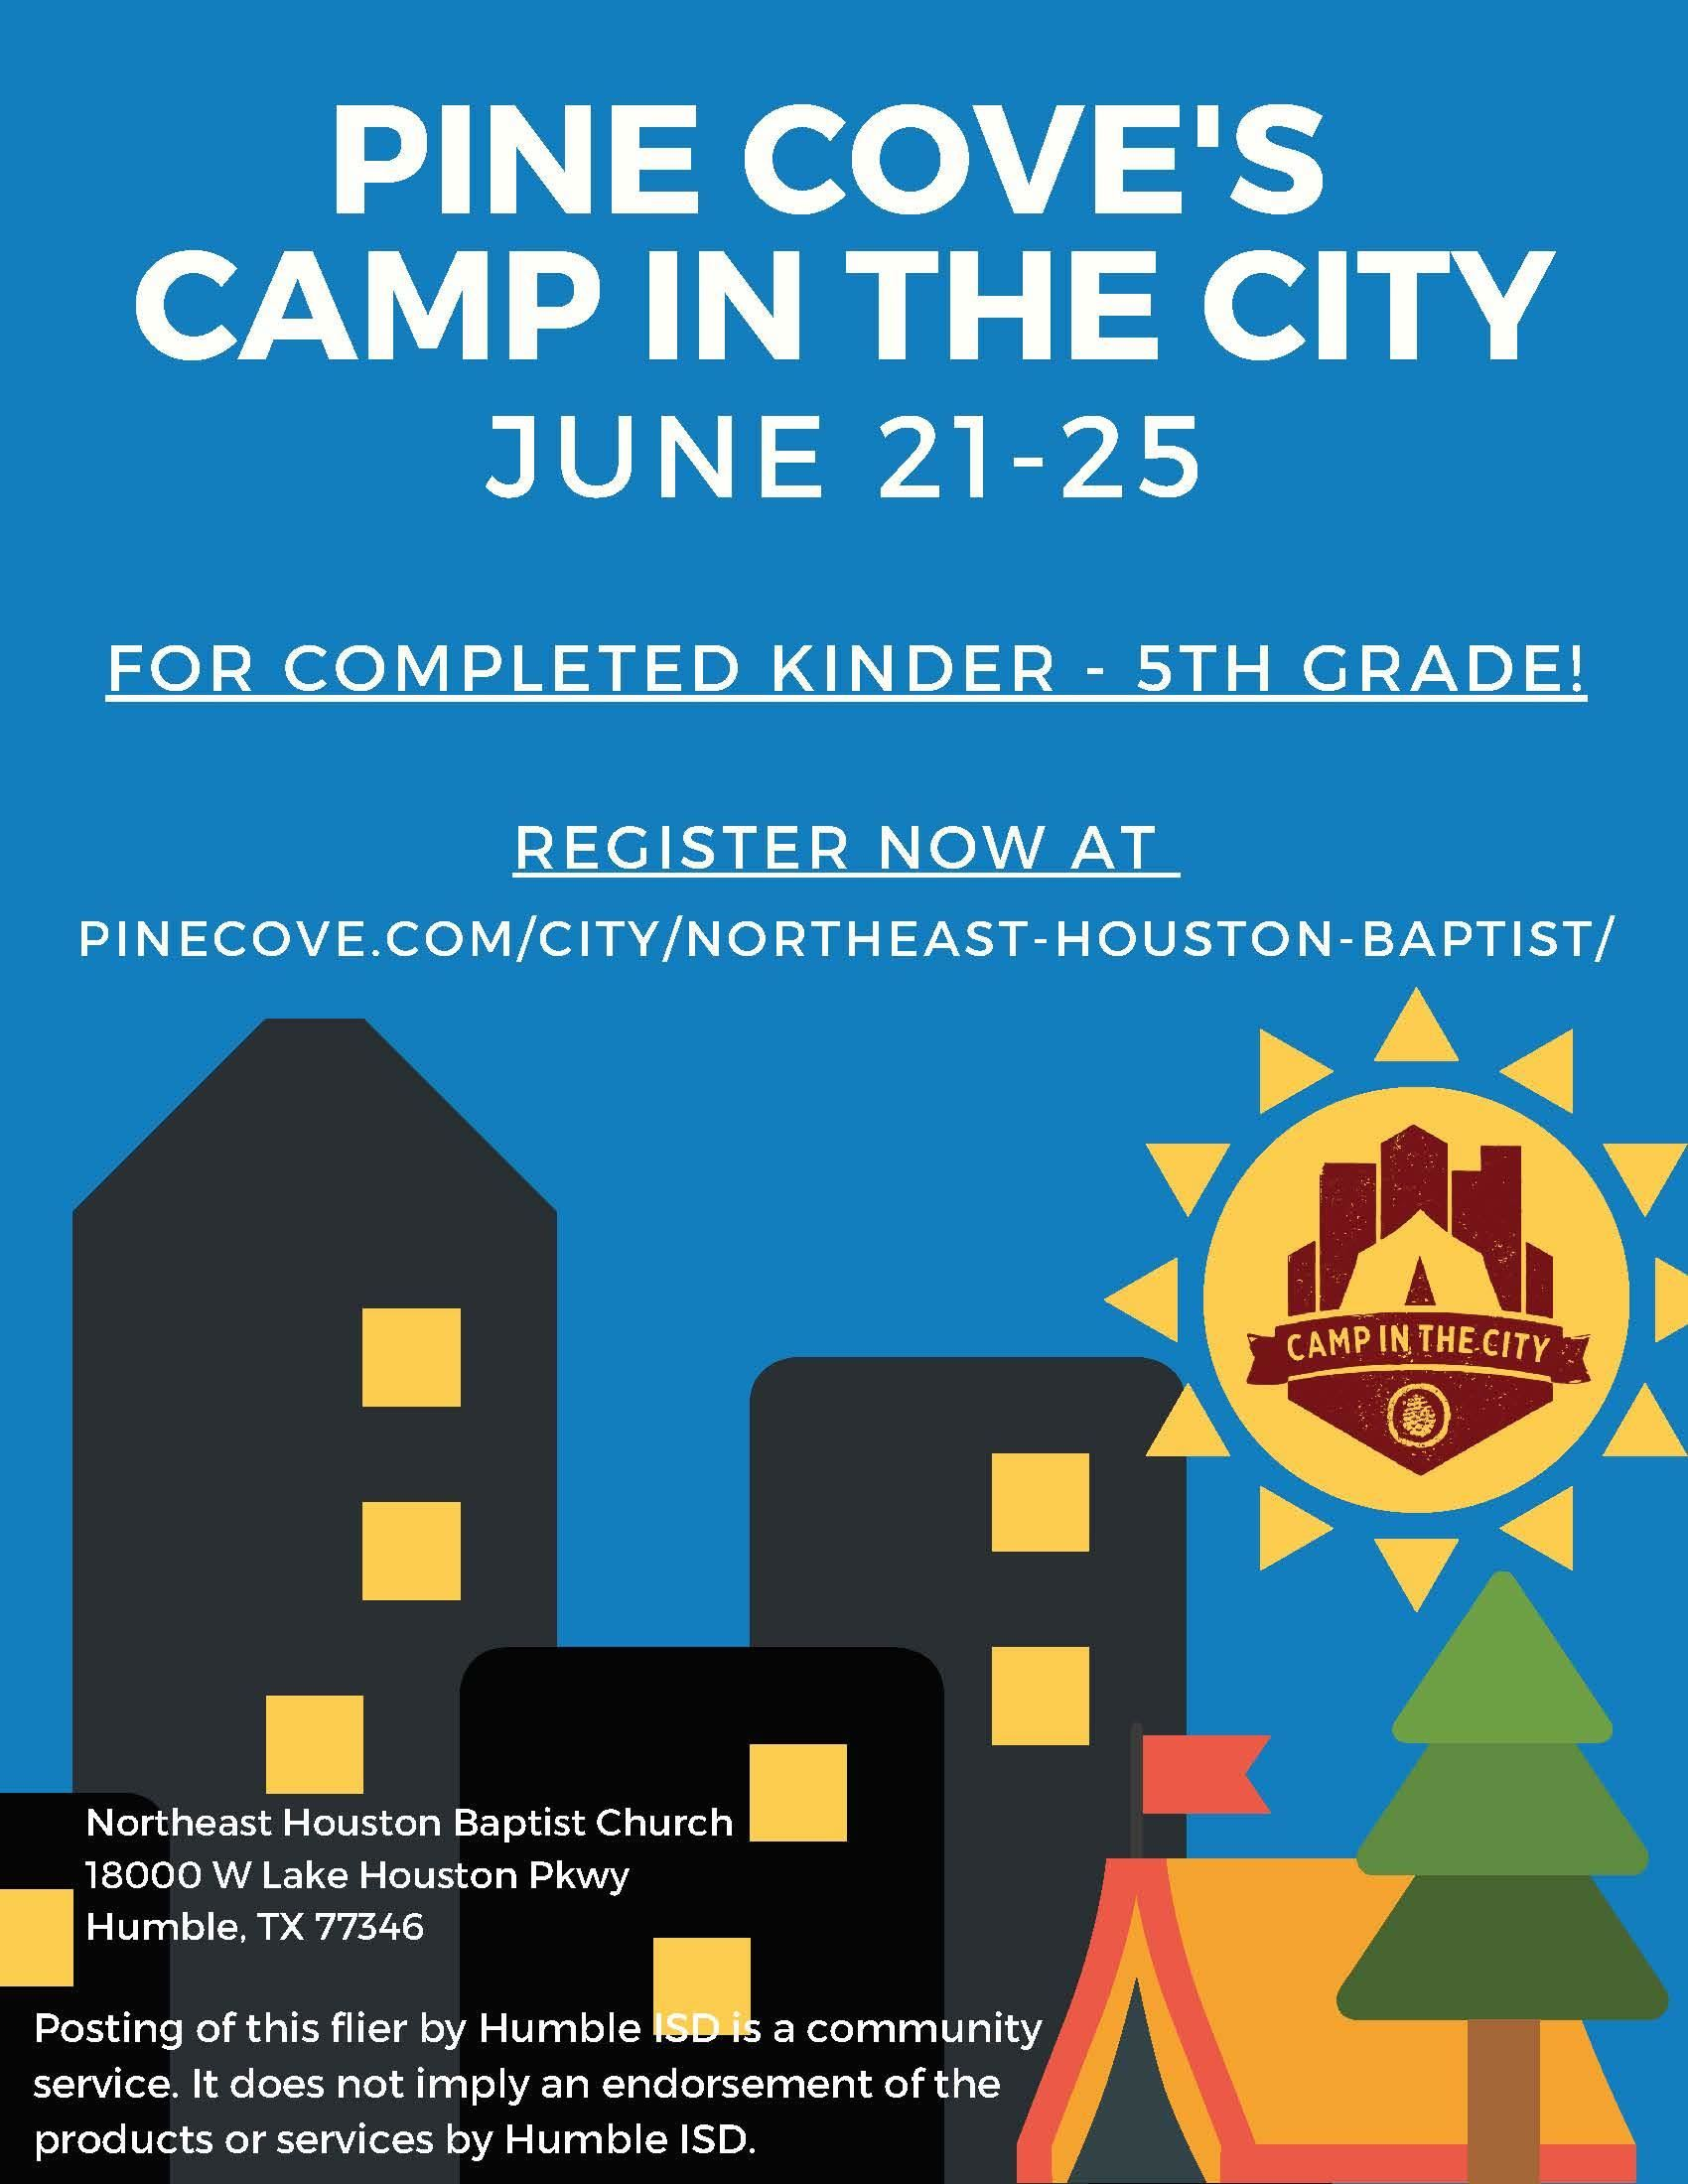 Pine Cove's Camp in the city